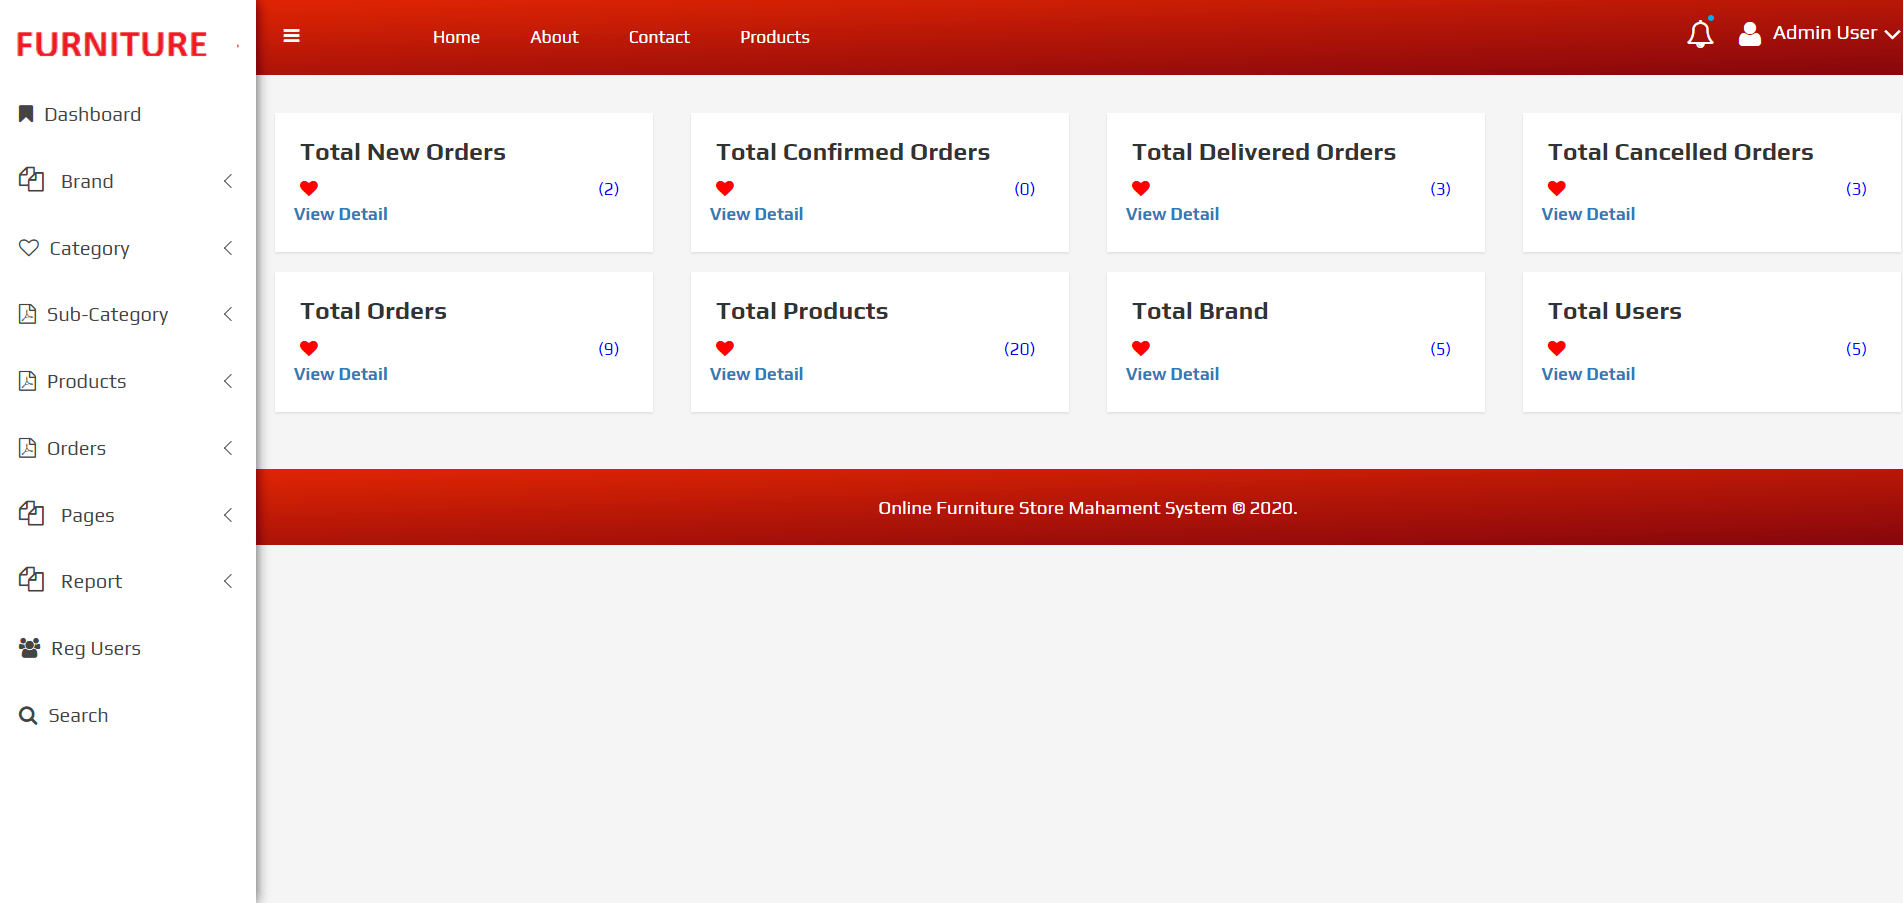 Online_Furniture_Store_Management_System_Dashboard